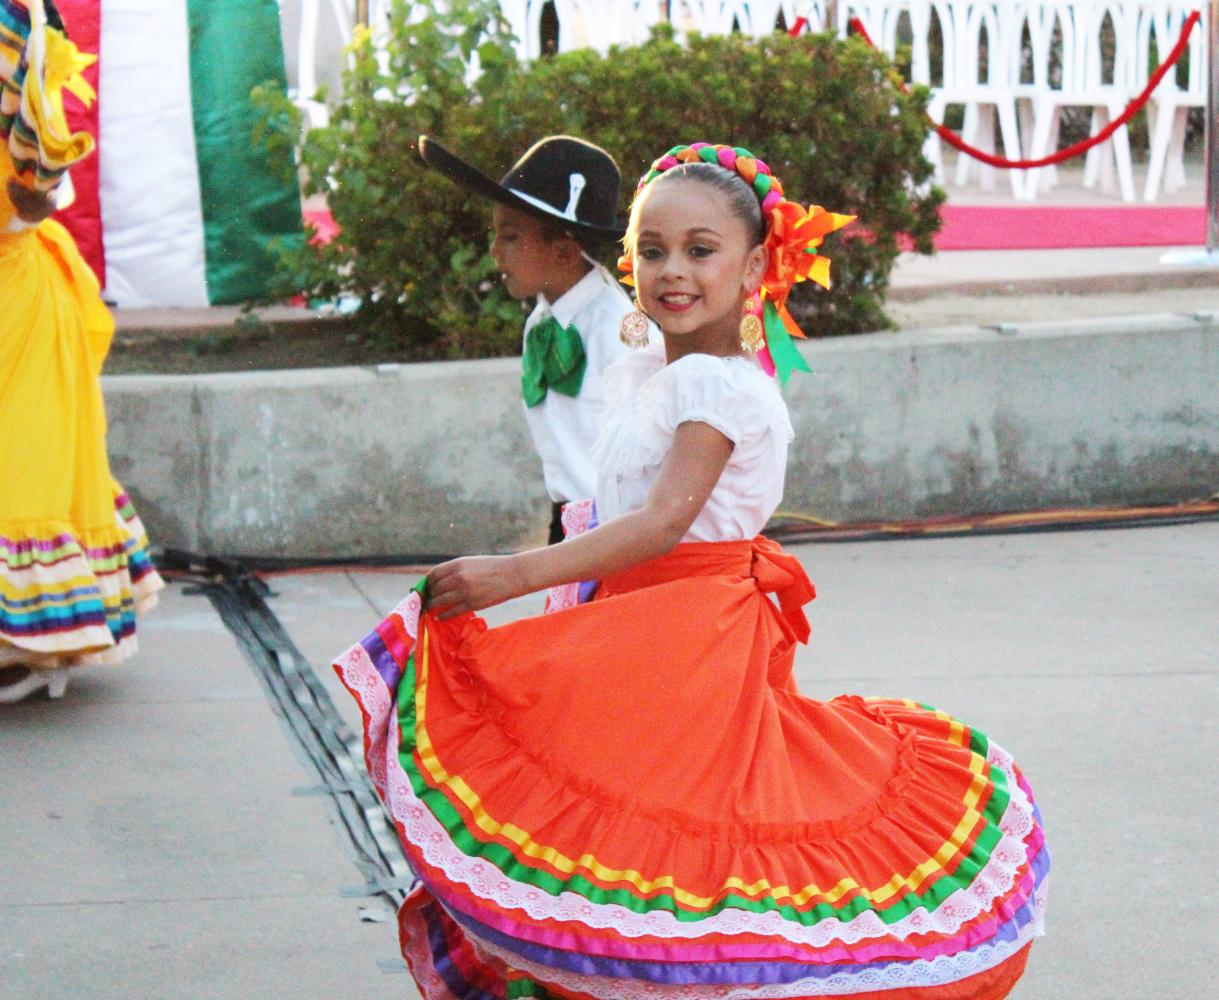 A little girl smiles as she twirls her skirt during a traditional Mexican dance routine.